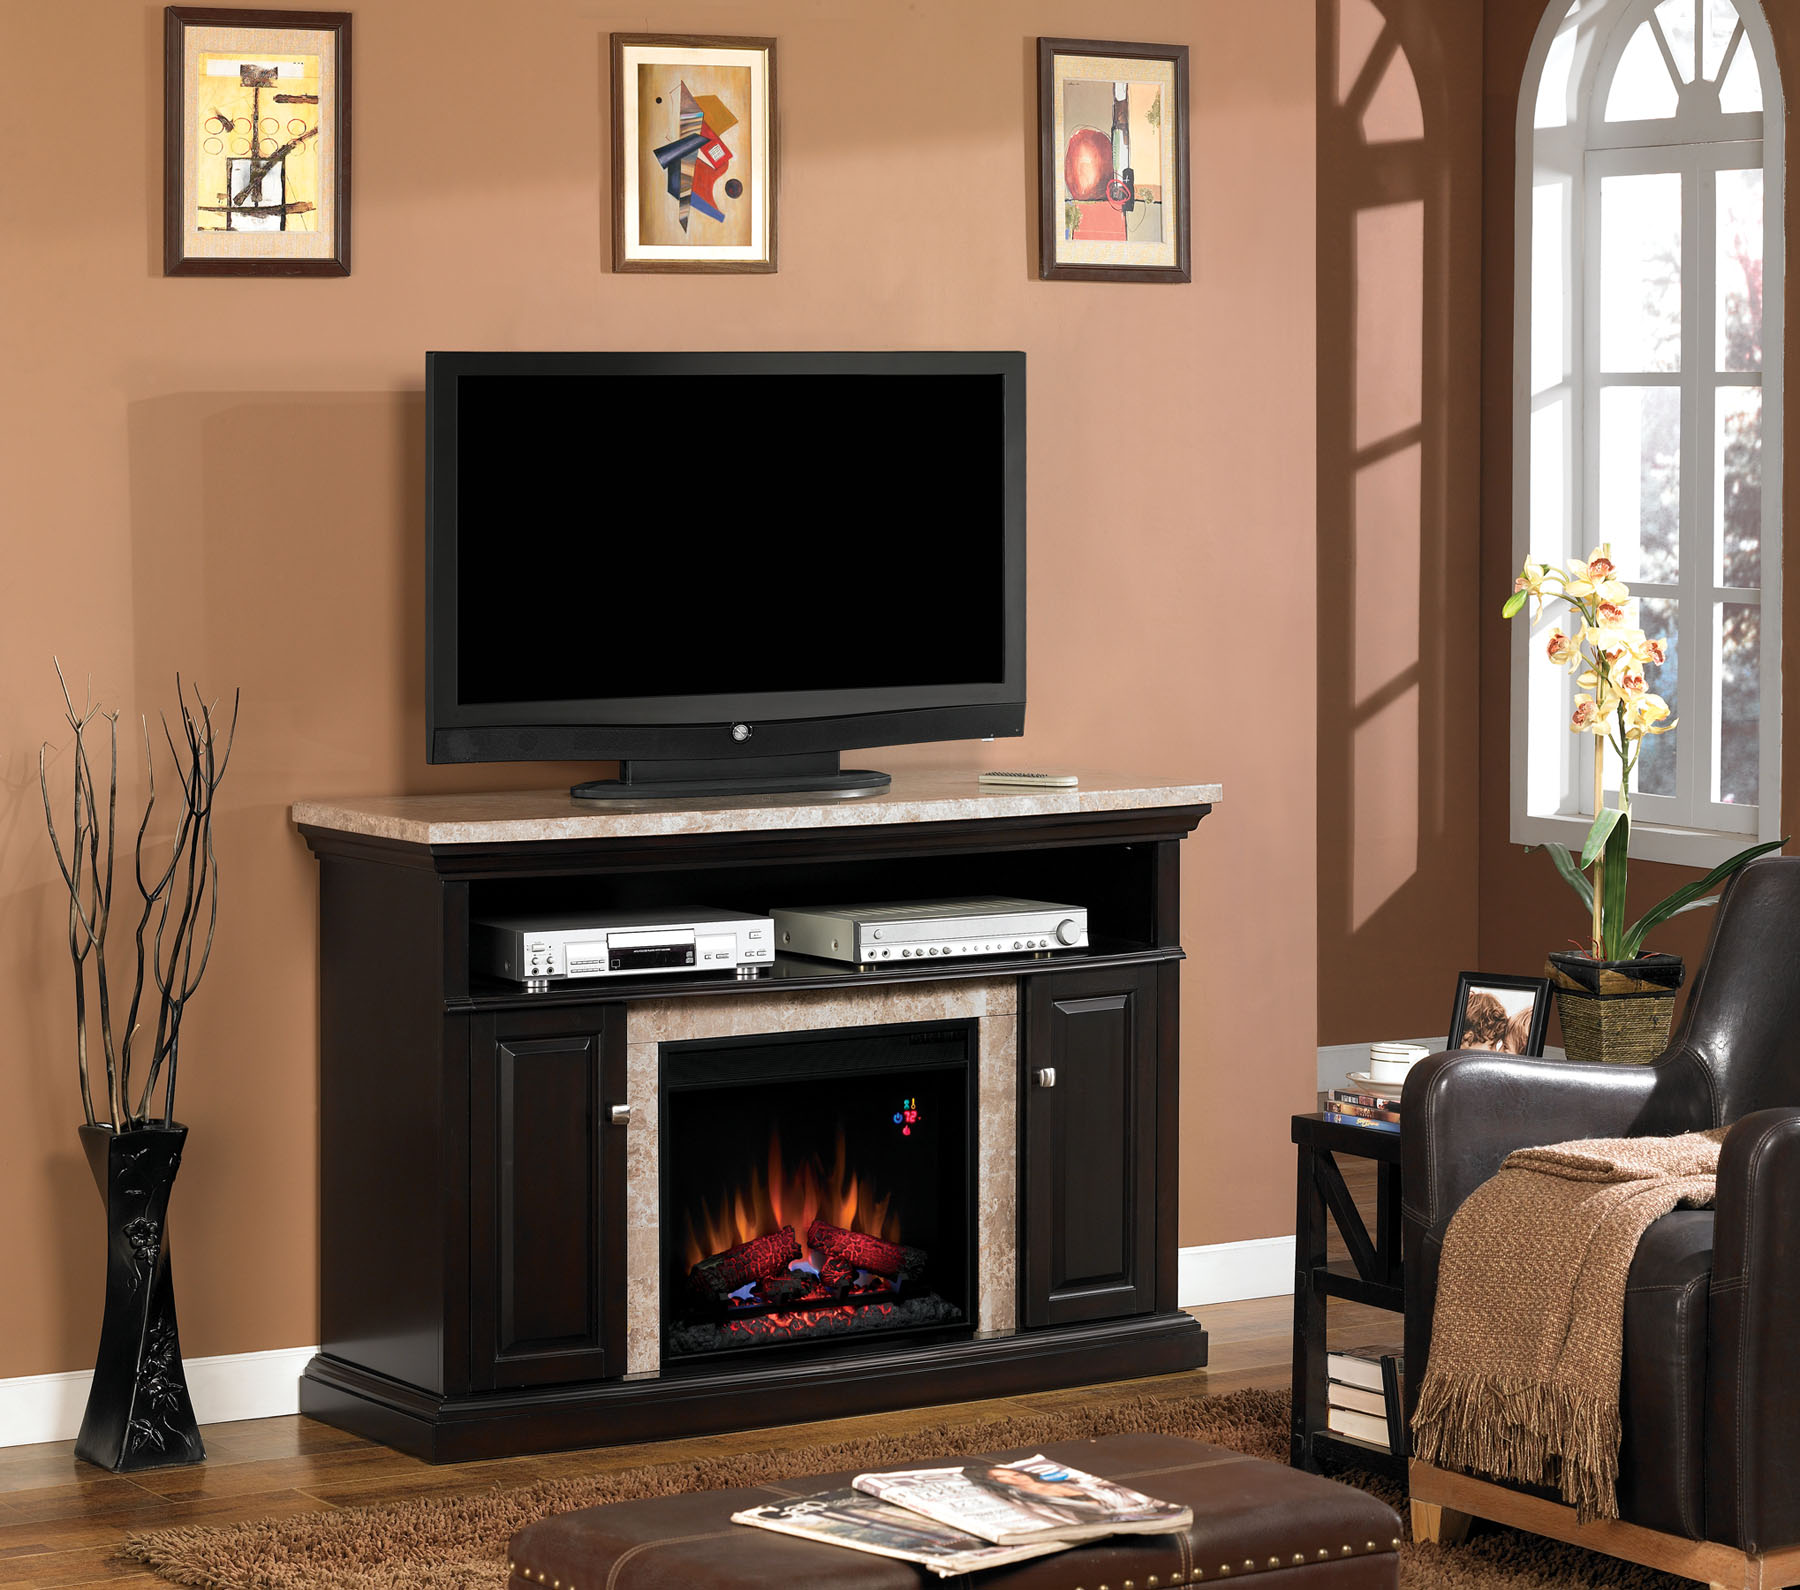 Bobs Fireplace 56